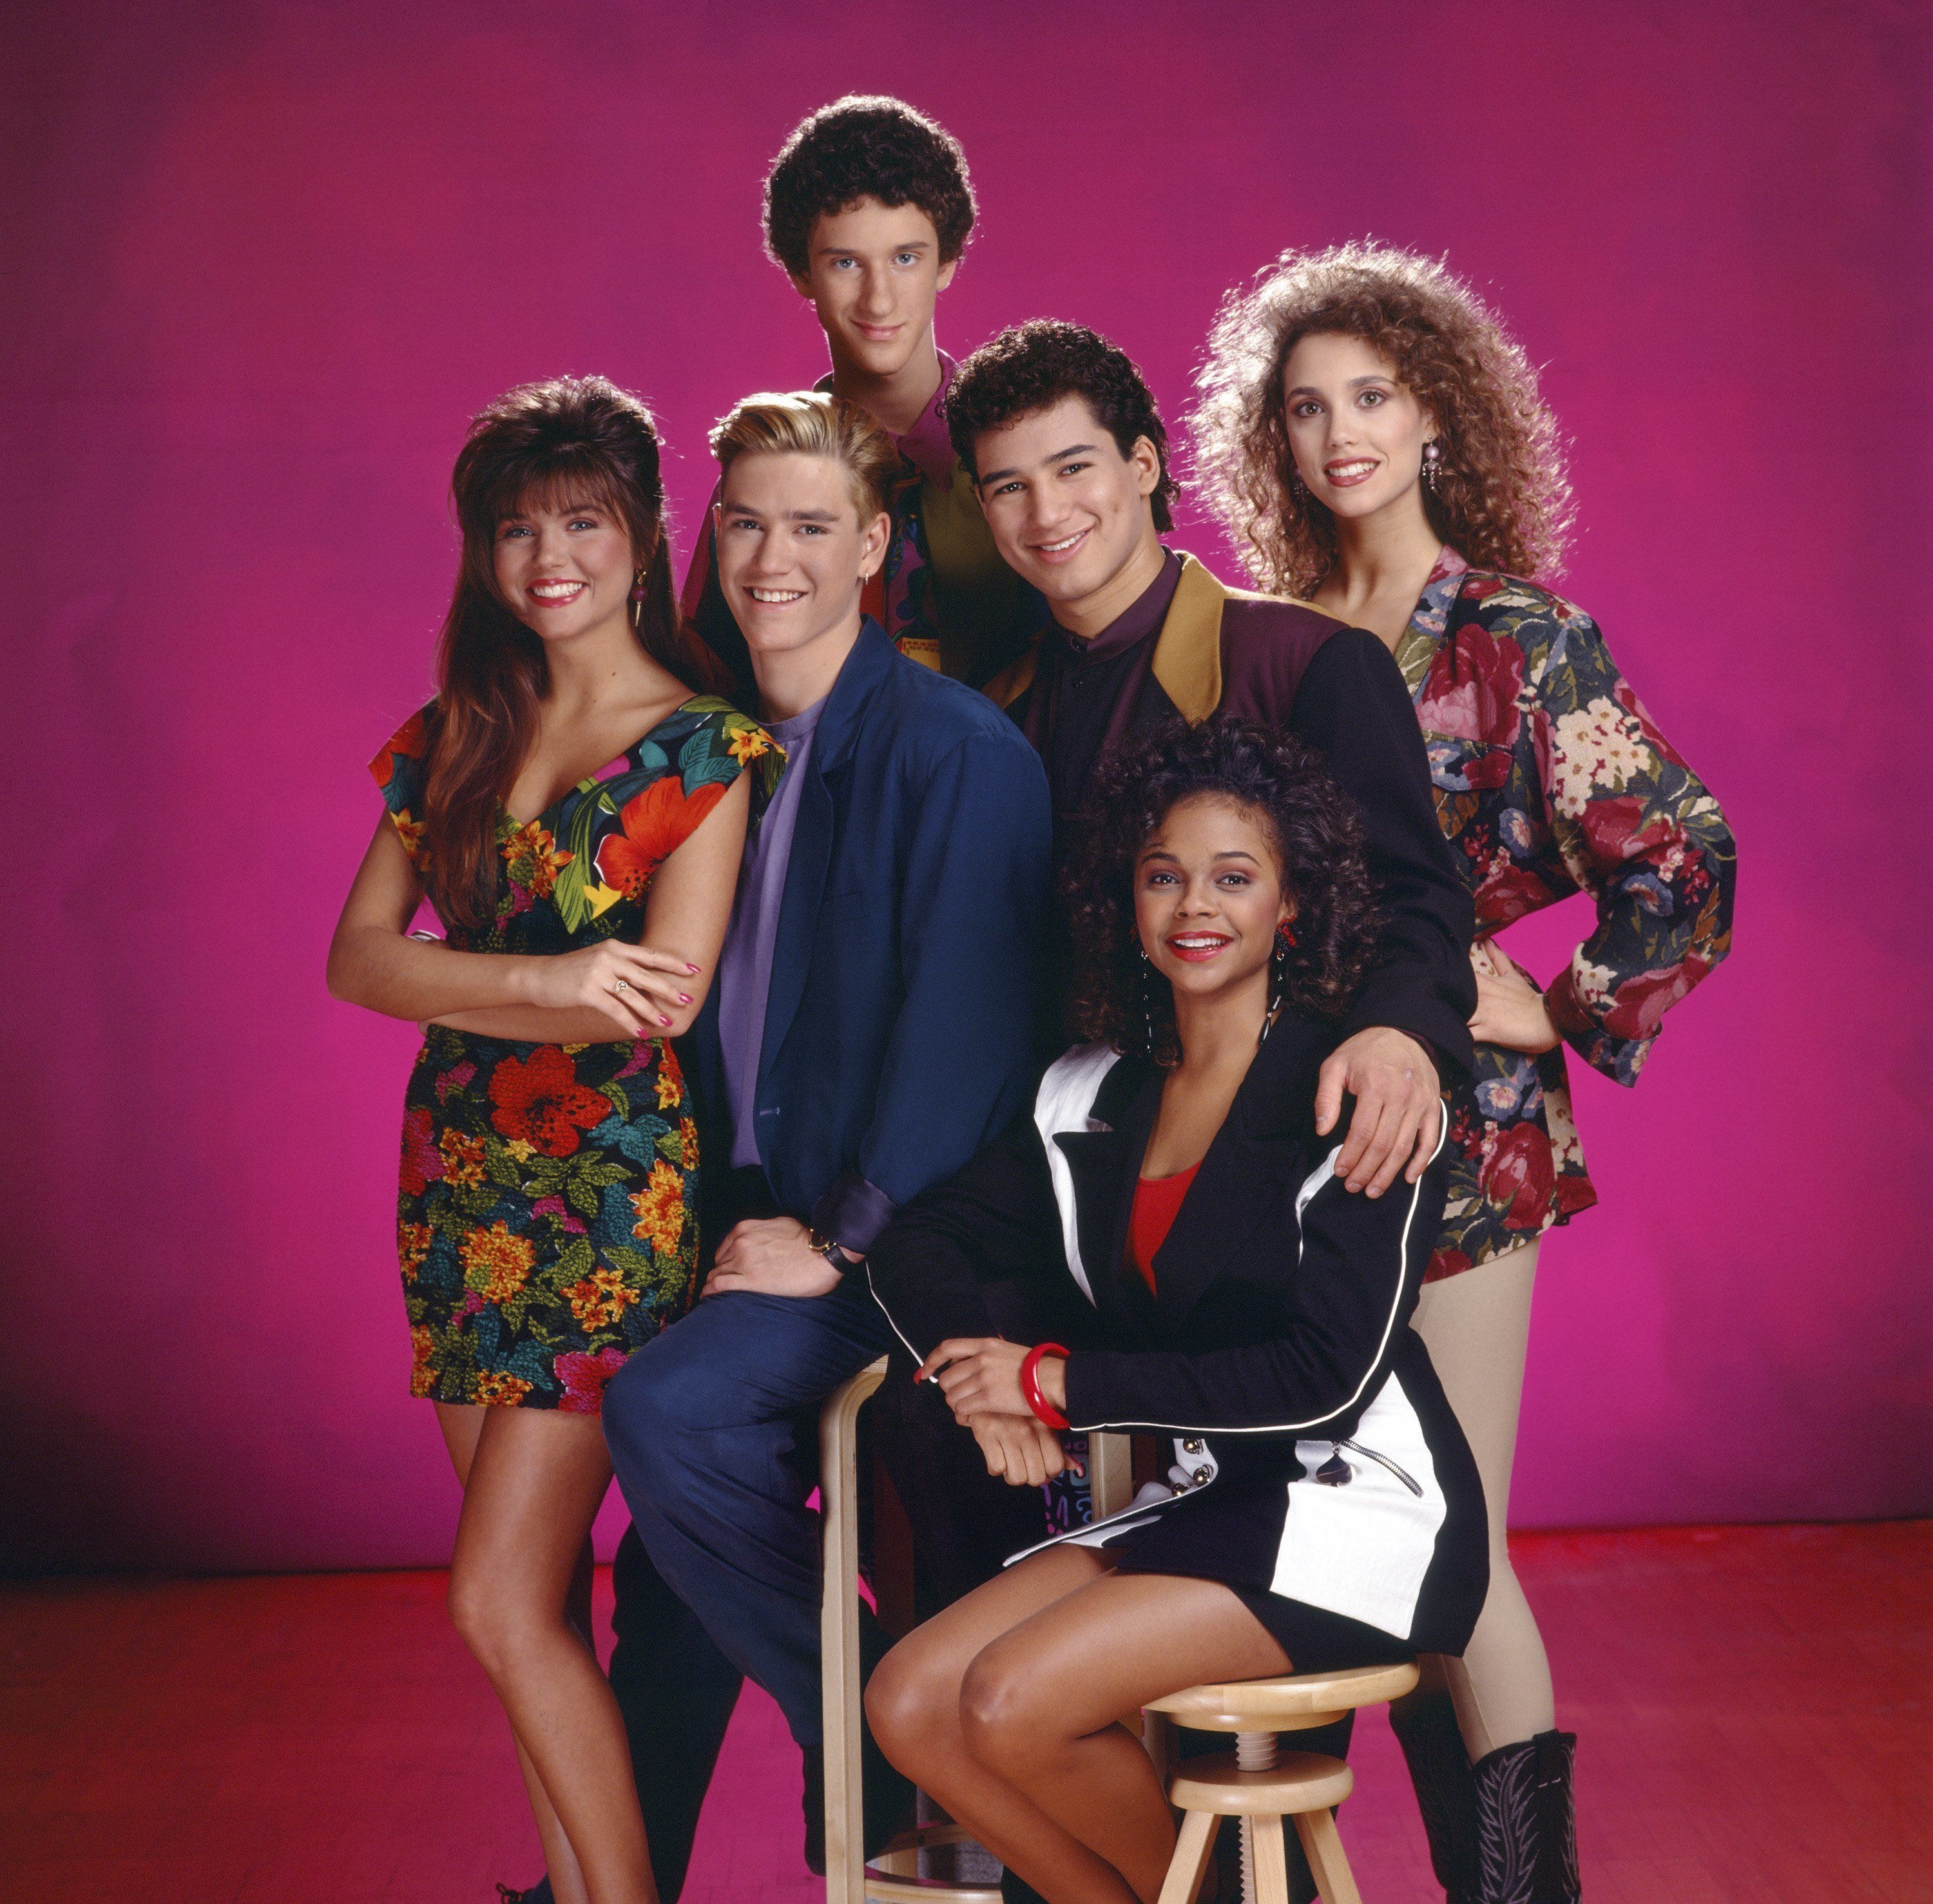 """Cast members from the hit series """"Saved by the Bell"""" are celebrating decades of friendship."""